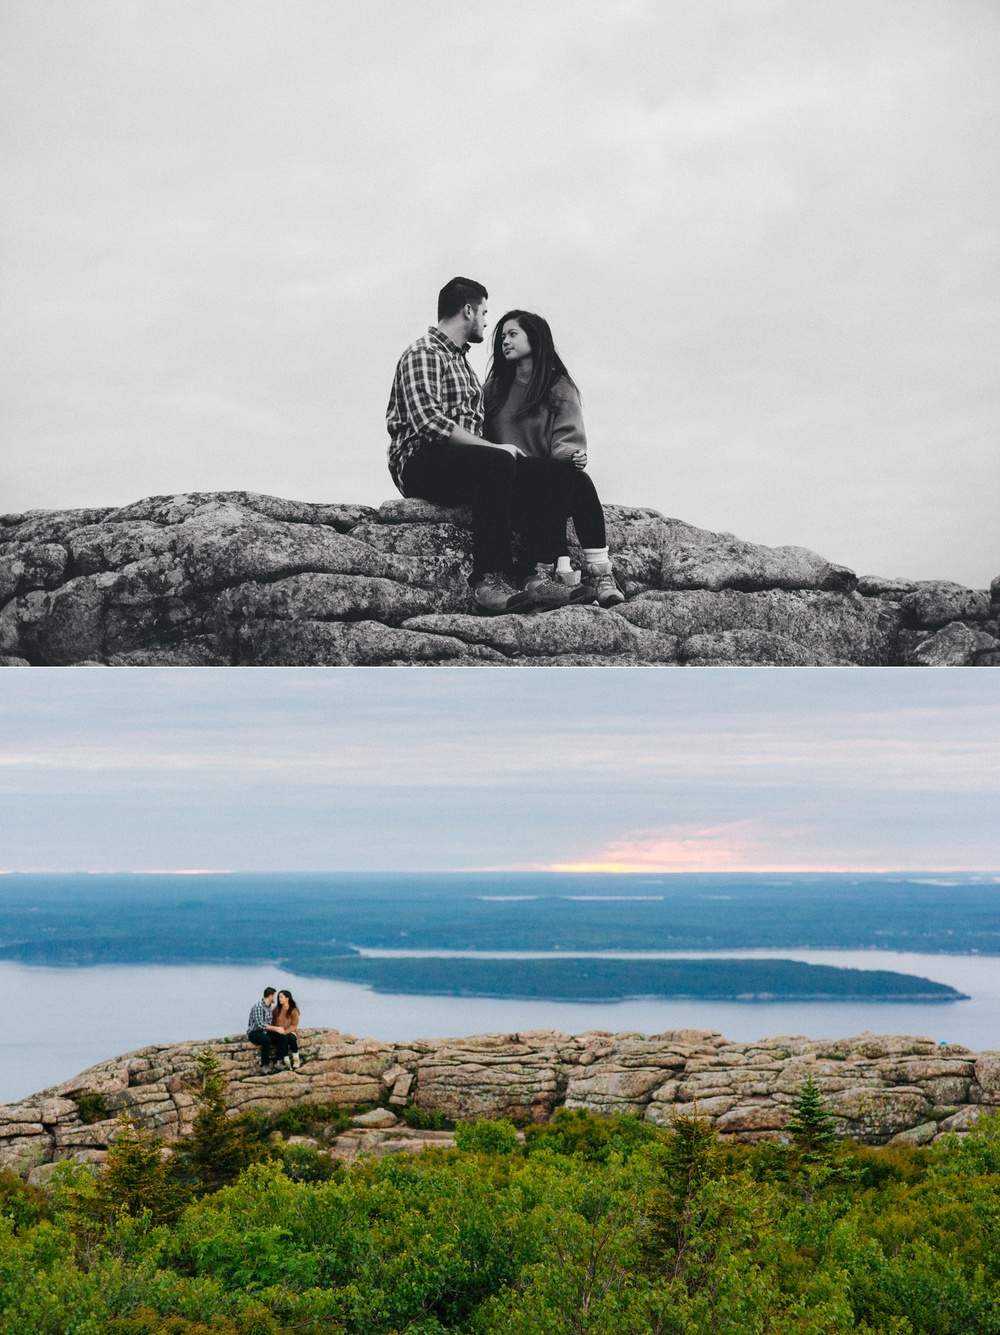 jake and jill acacdia national park engagement session cadillac mountain engagement session jordan pond engagement session maine engagement session jake and katie_0007